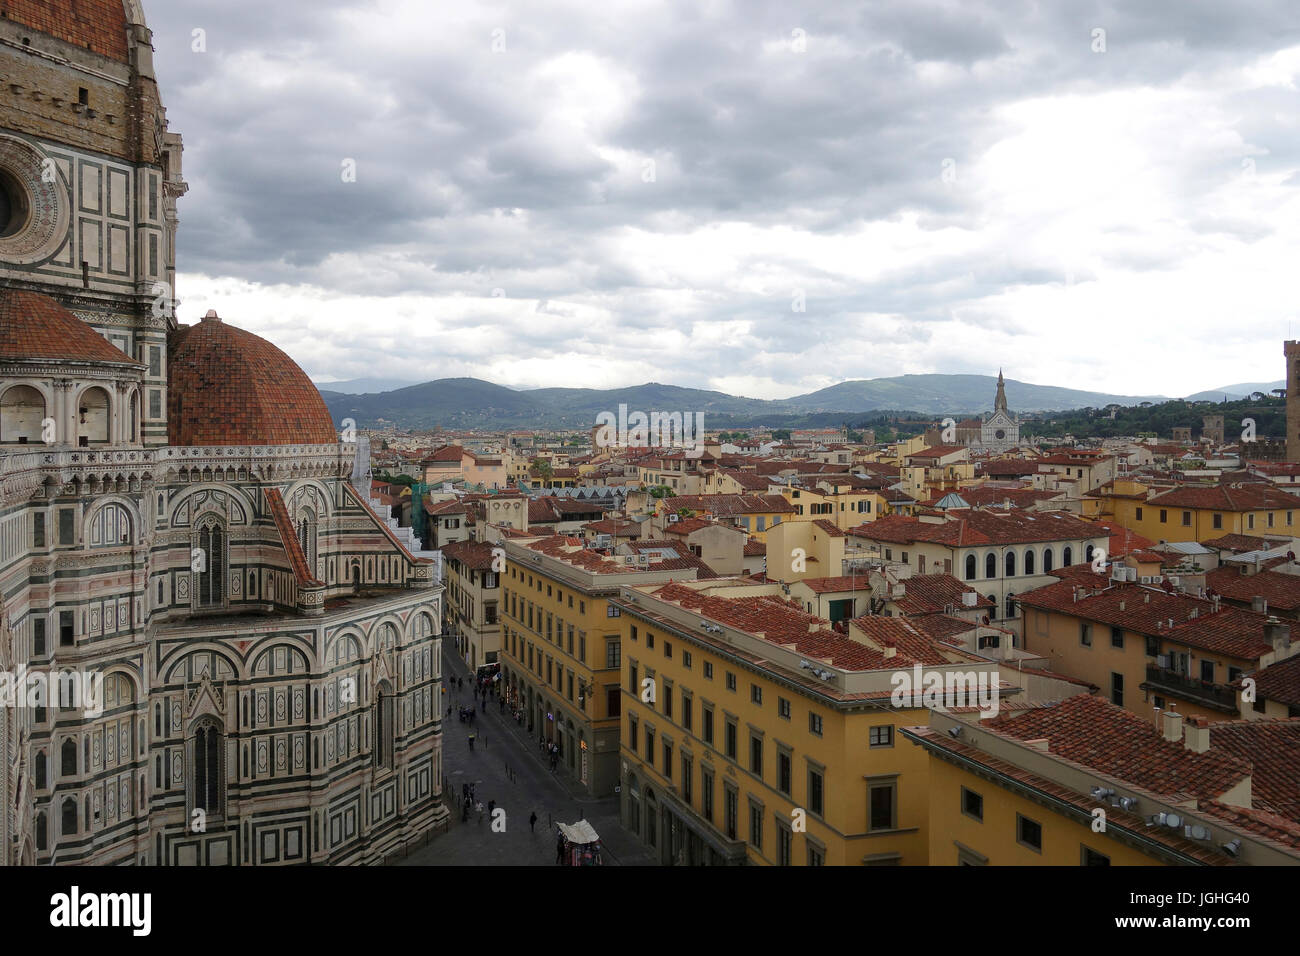 View from the Duomo, Florence, Italy - Stock Image